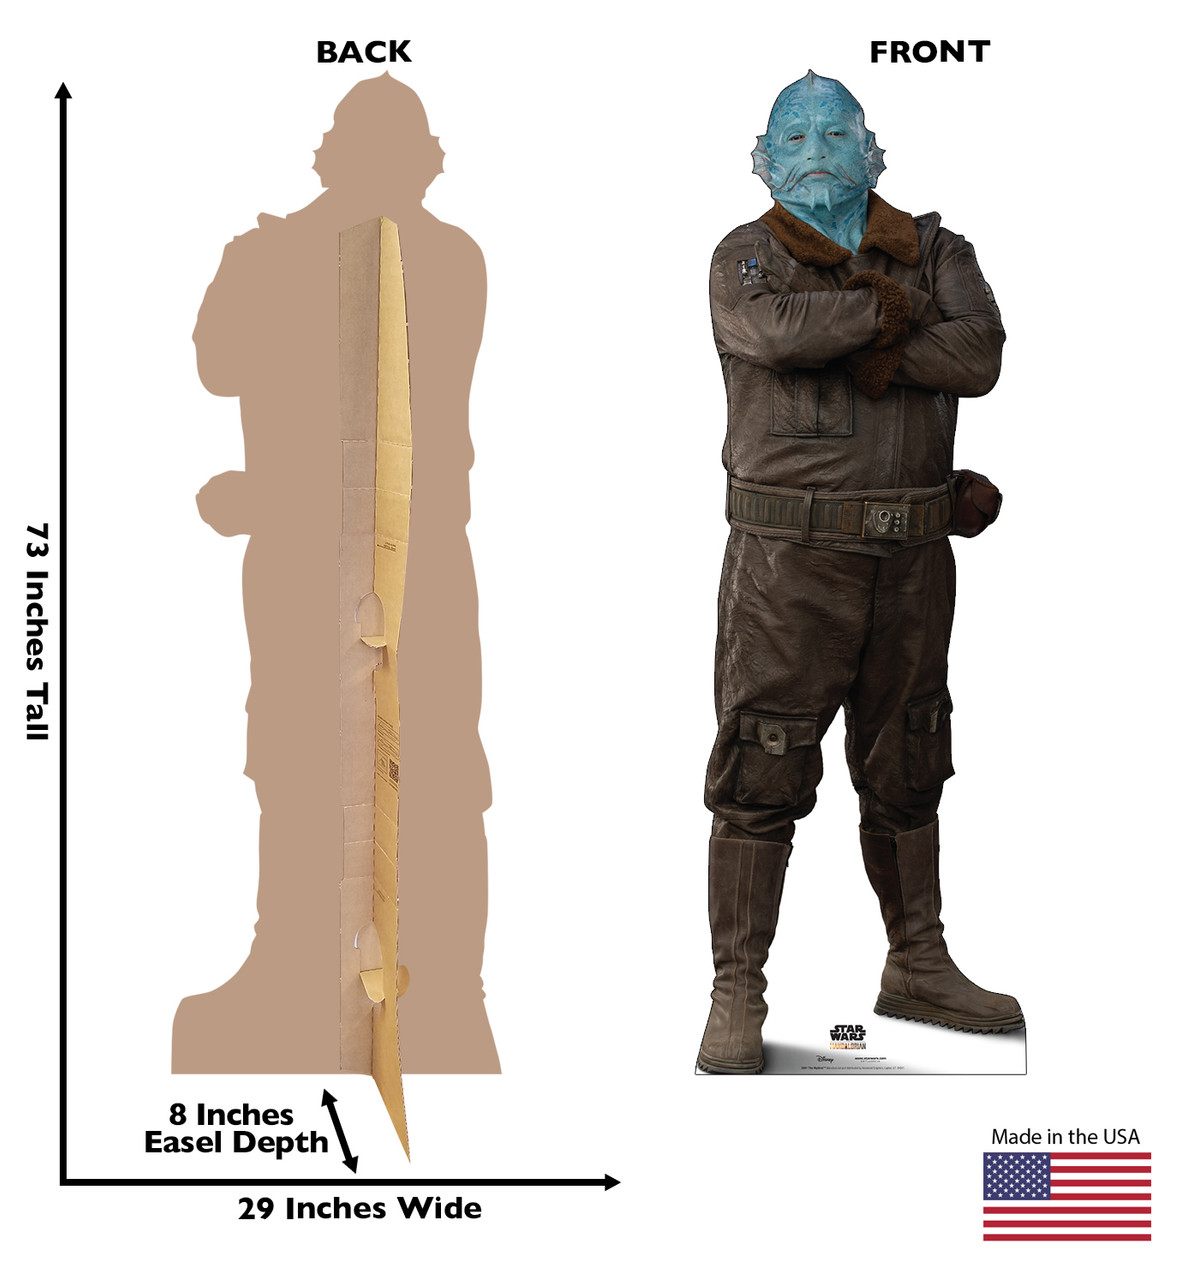 Life-size cardboard standee of The Mythrol with back and front dimensions.